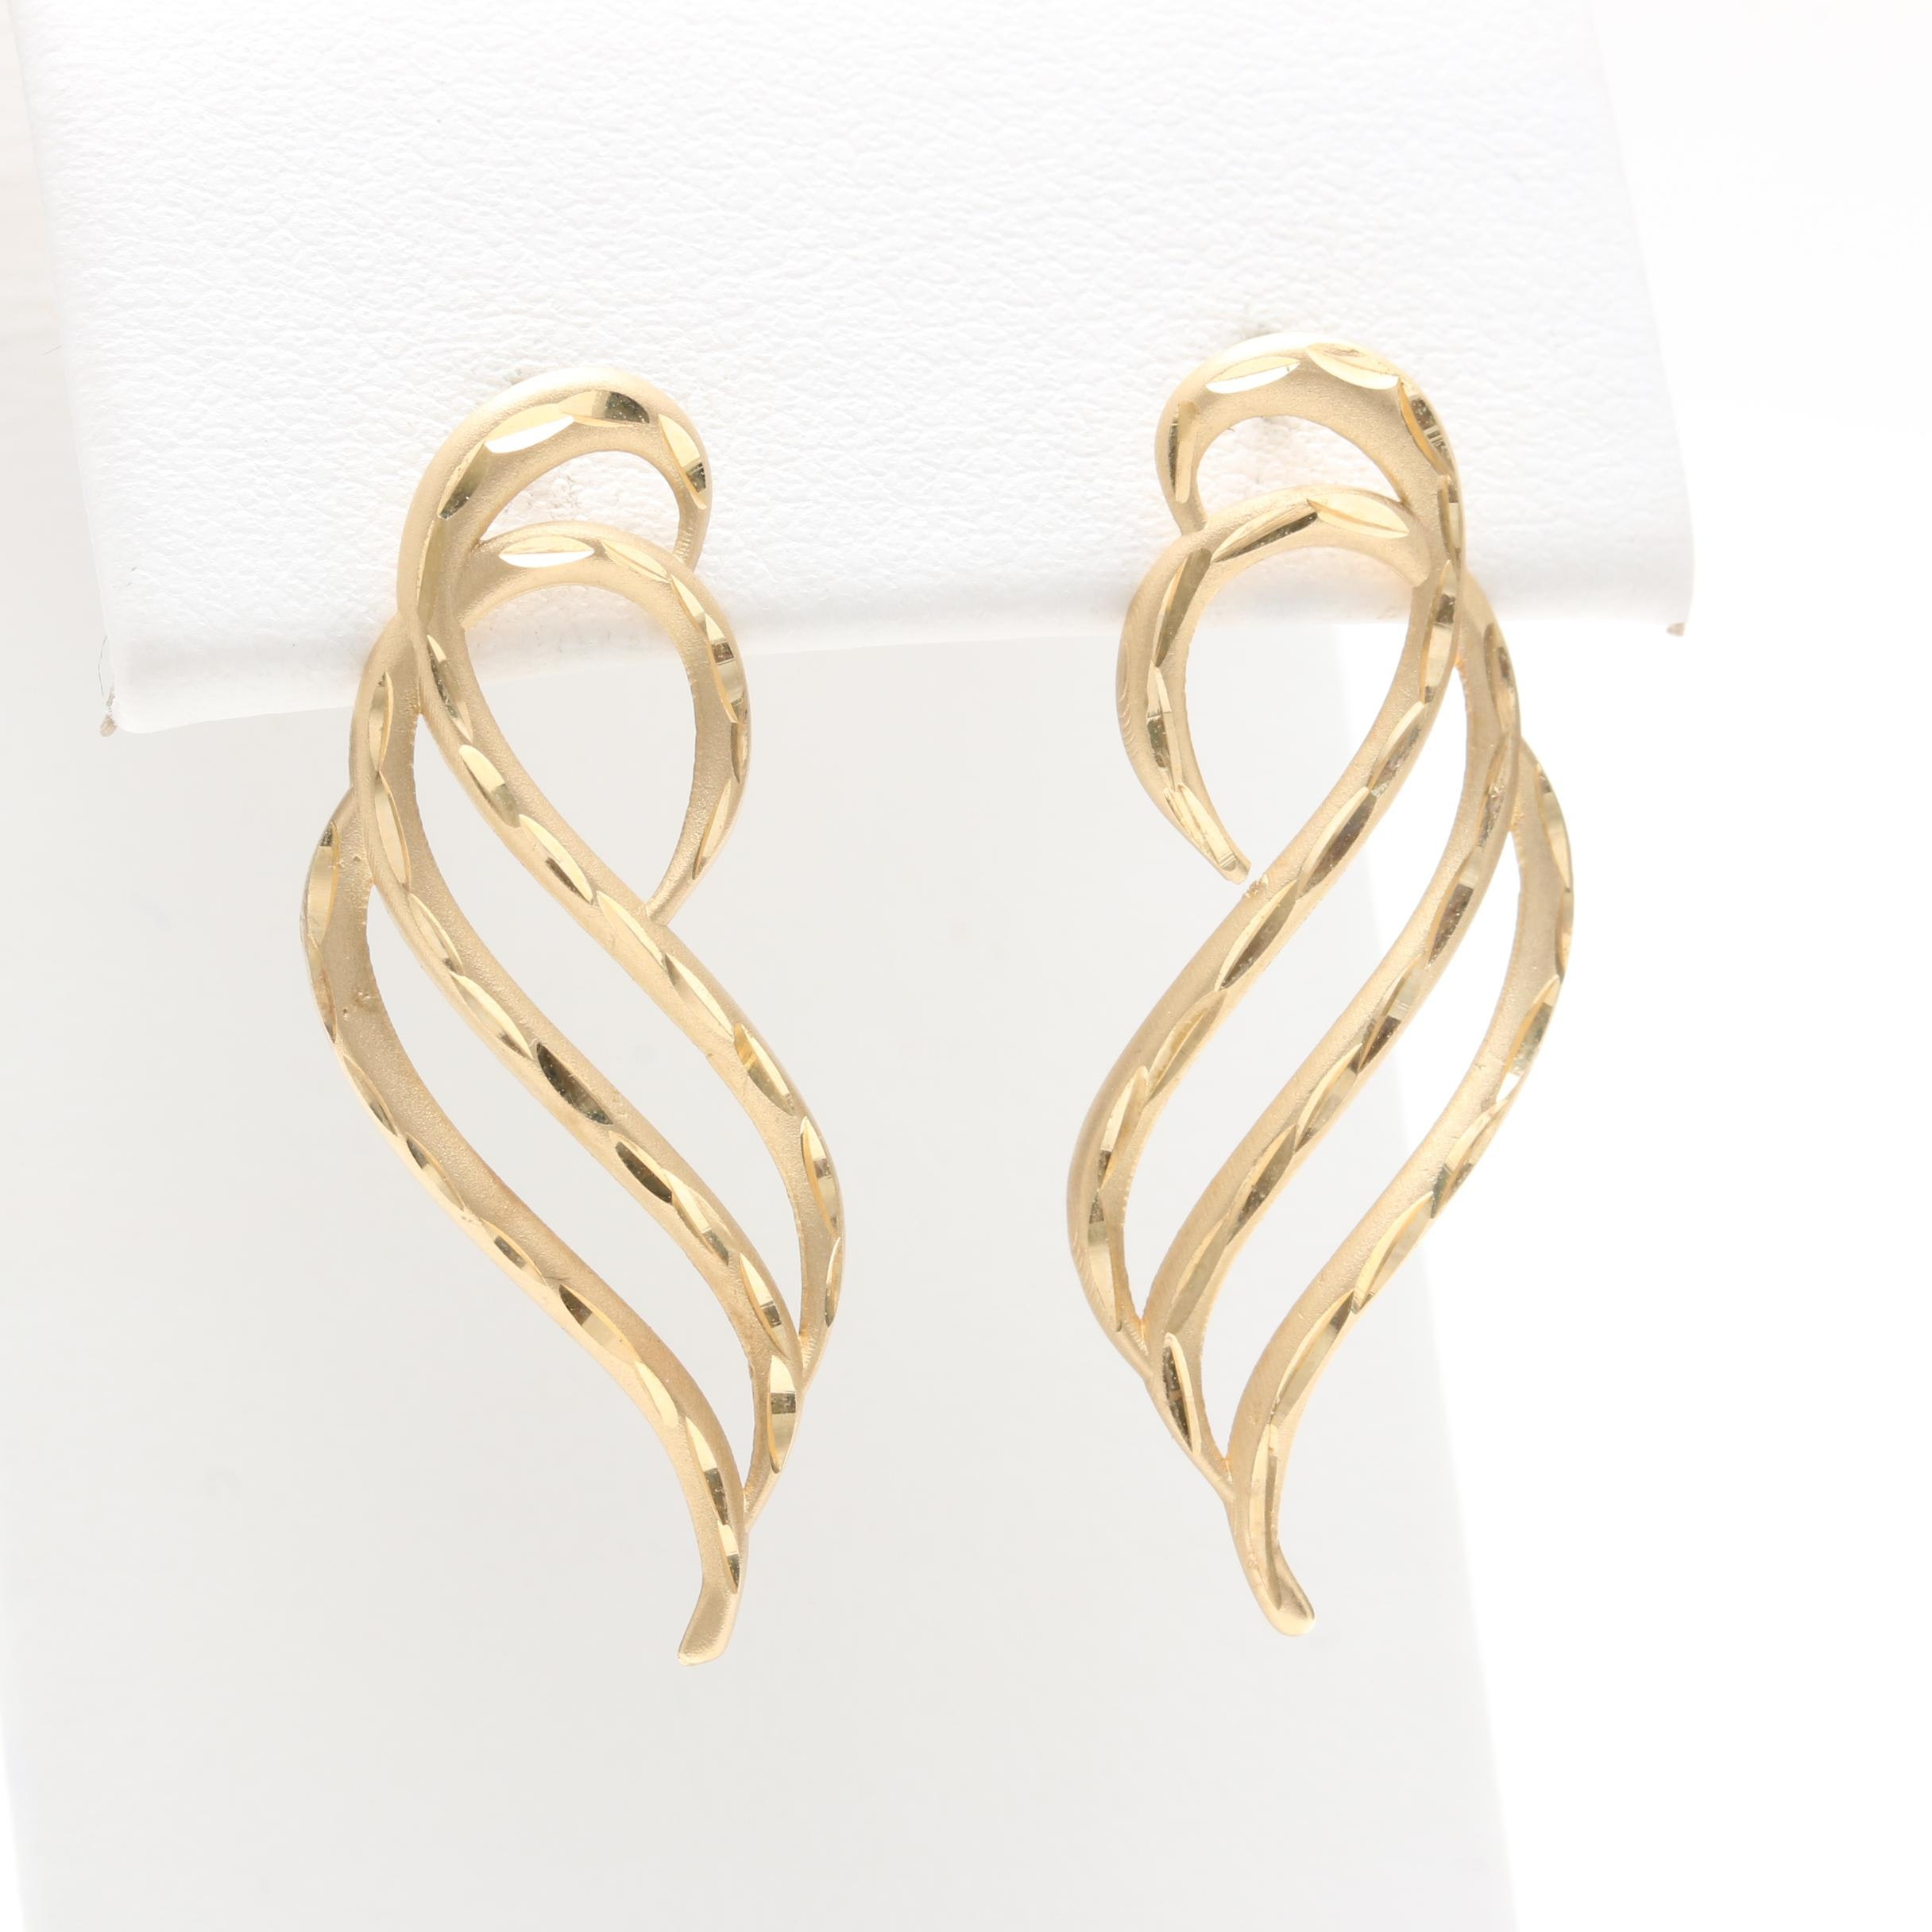 Michael Anthony 14K Yellow Gold Earrings